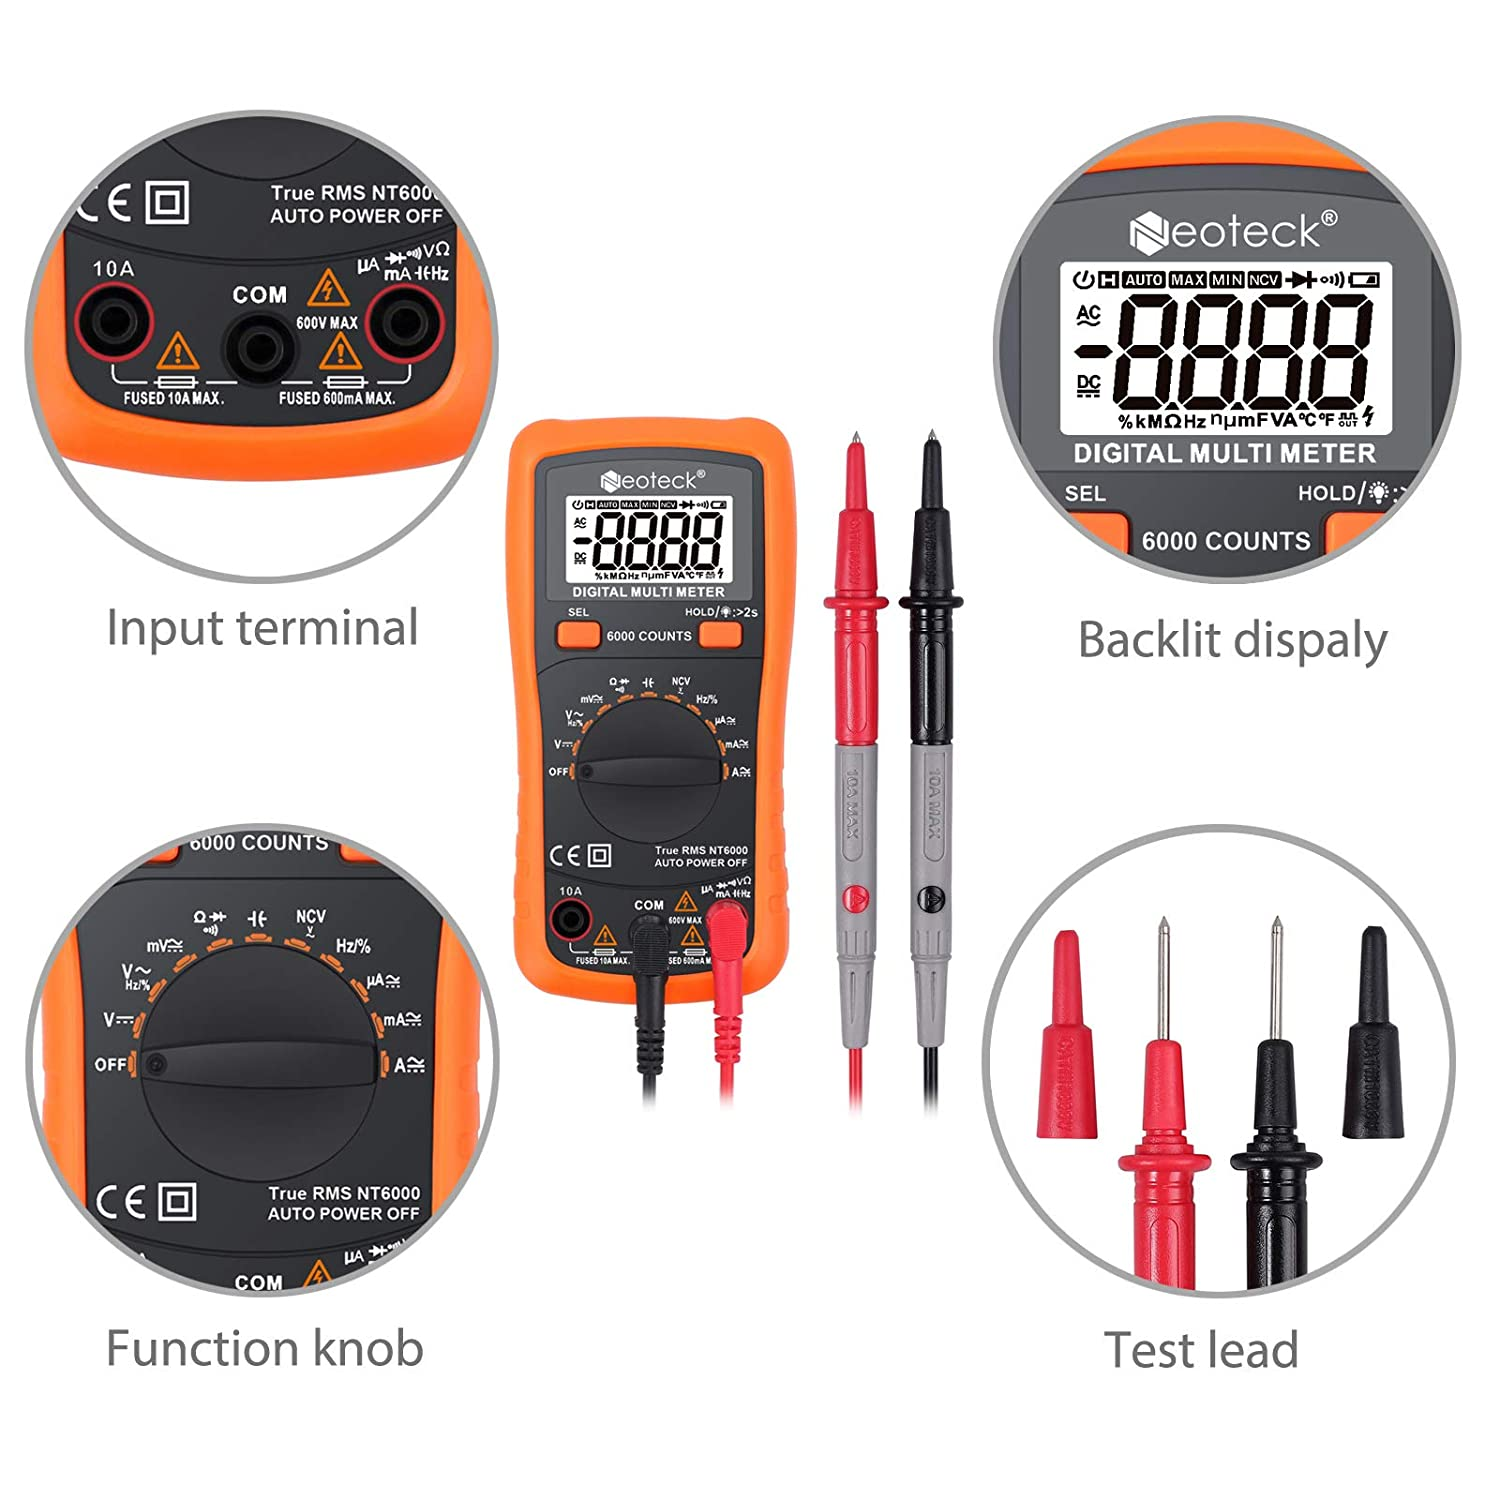 Transistor-Transistor Logic Neoteck 4000 Counts Digital Multimeter Auto Manual Ranging for AC//DC Volt Current Resistance Capacitance Frequency Temperature CMOS and TTL